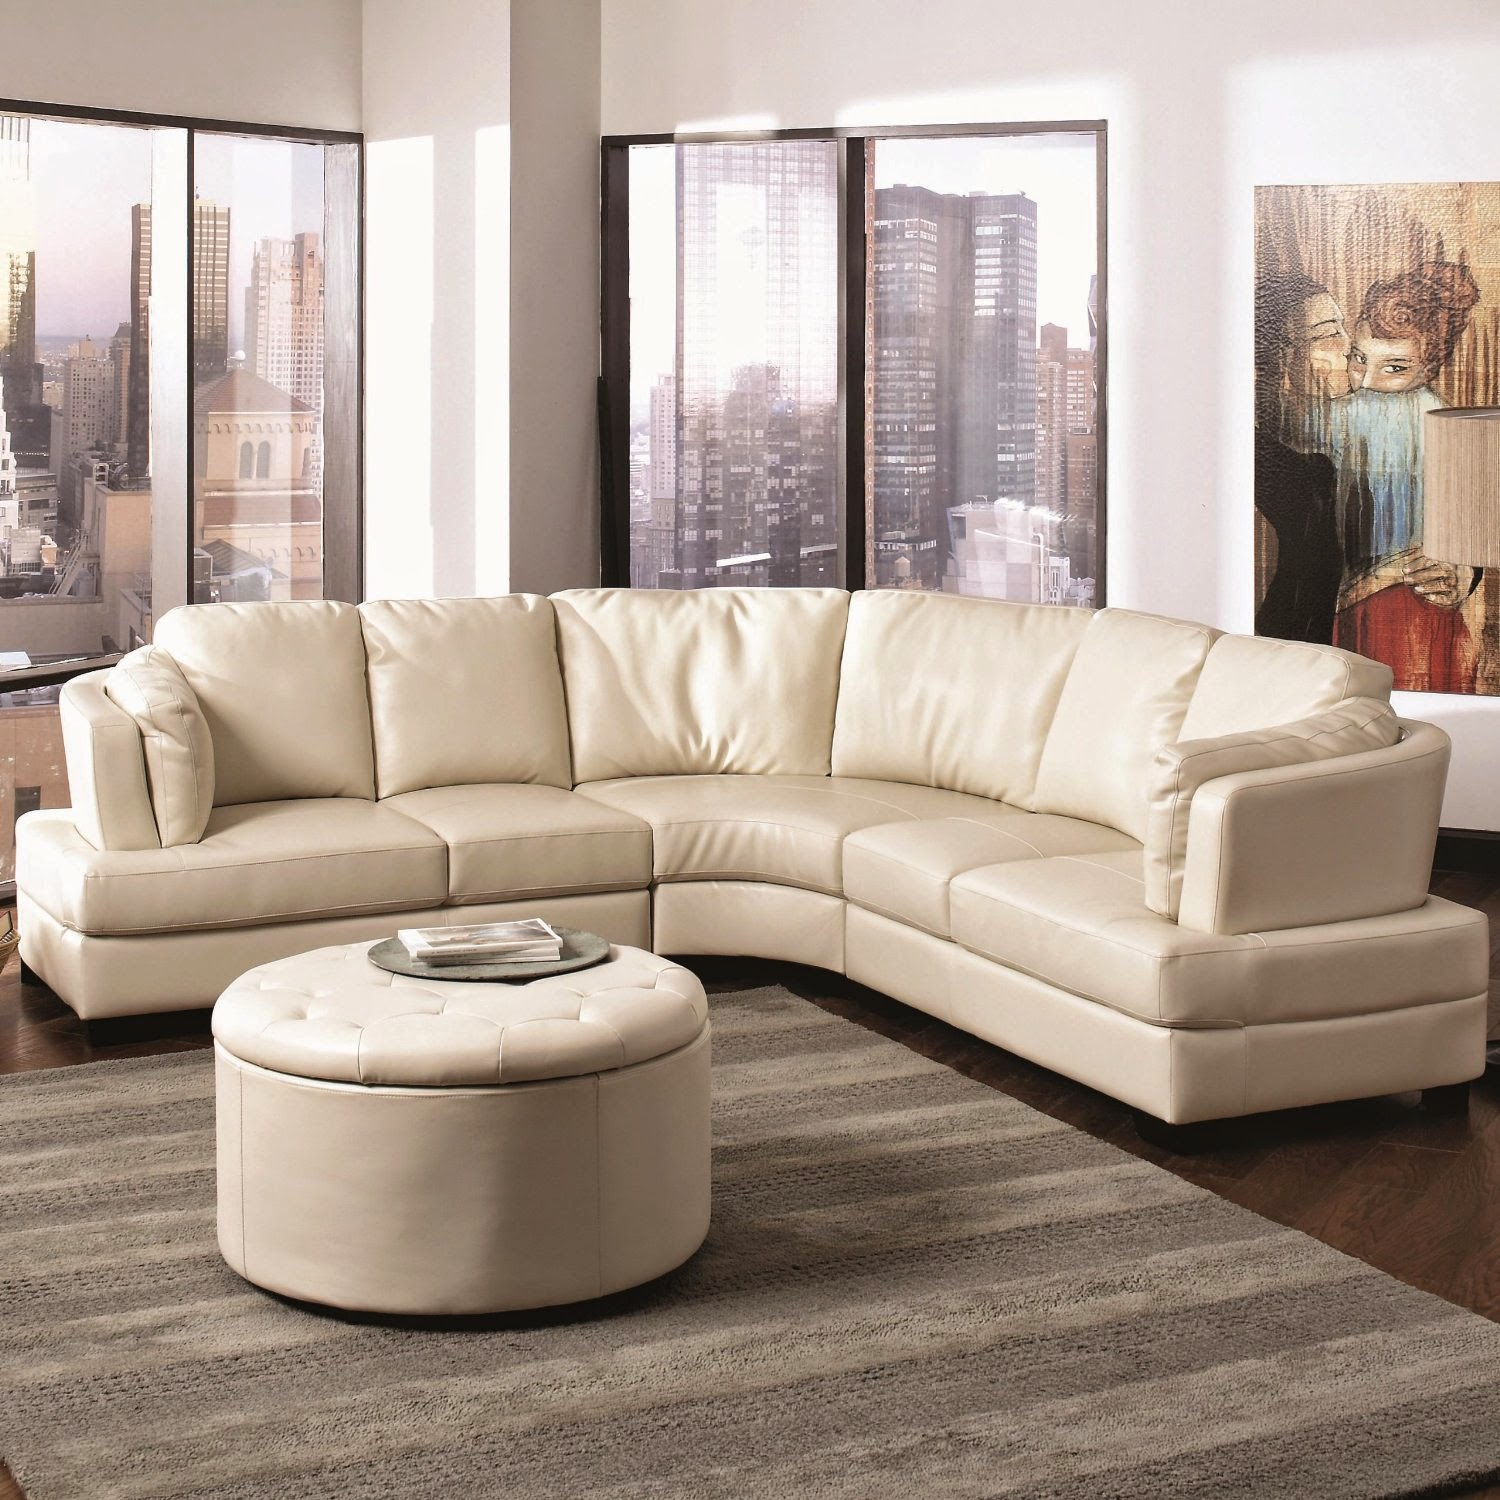 Landen Cream Curved Sectional Sofa For Sale